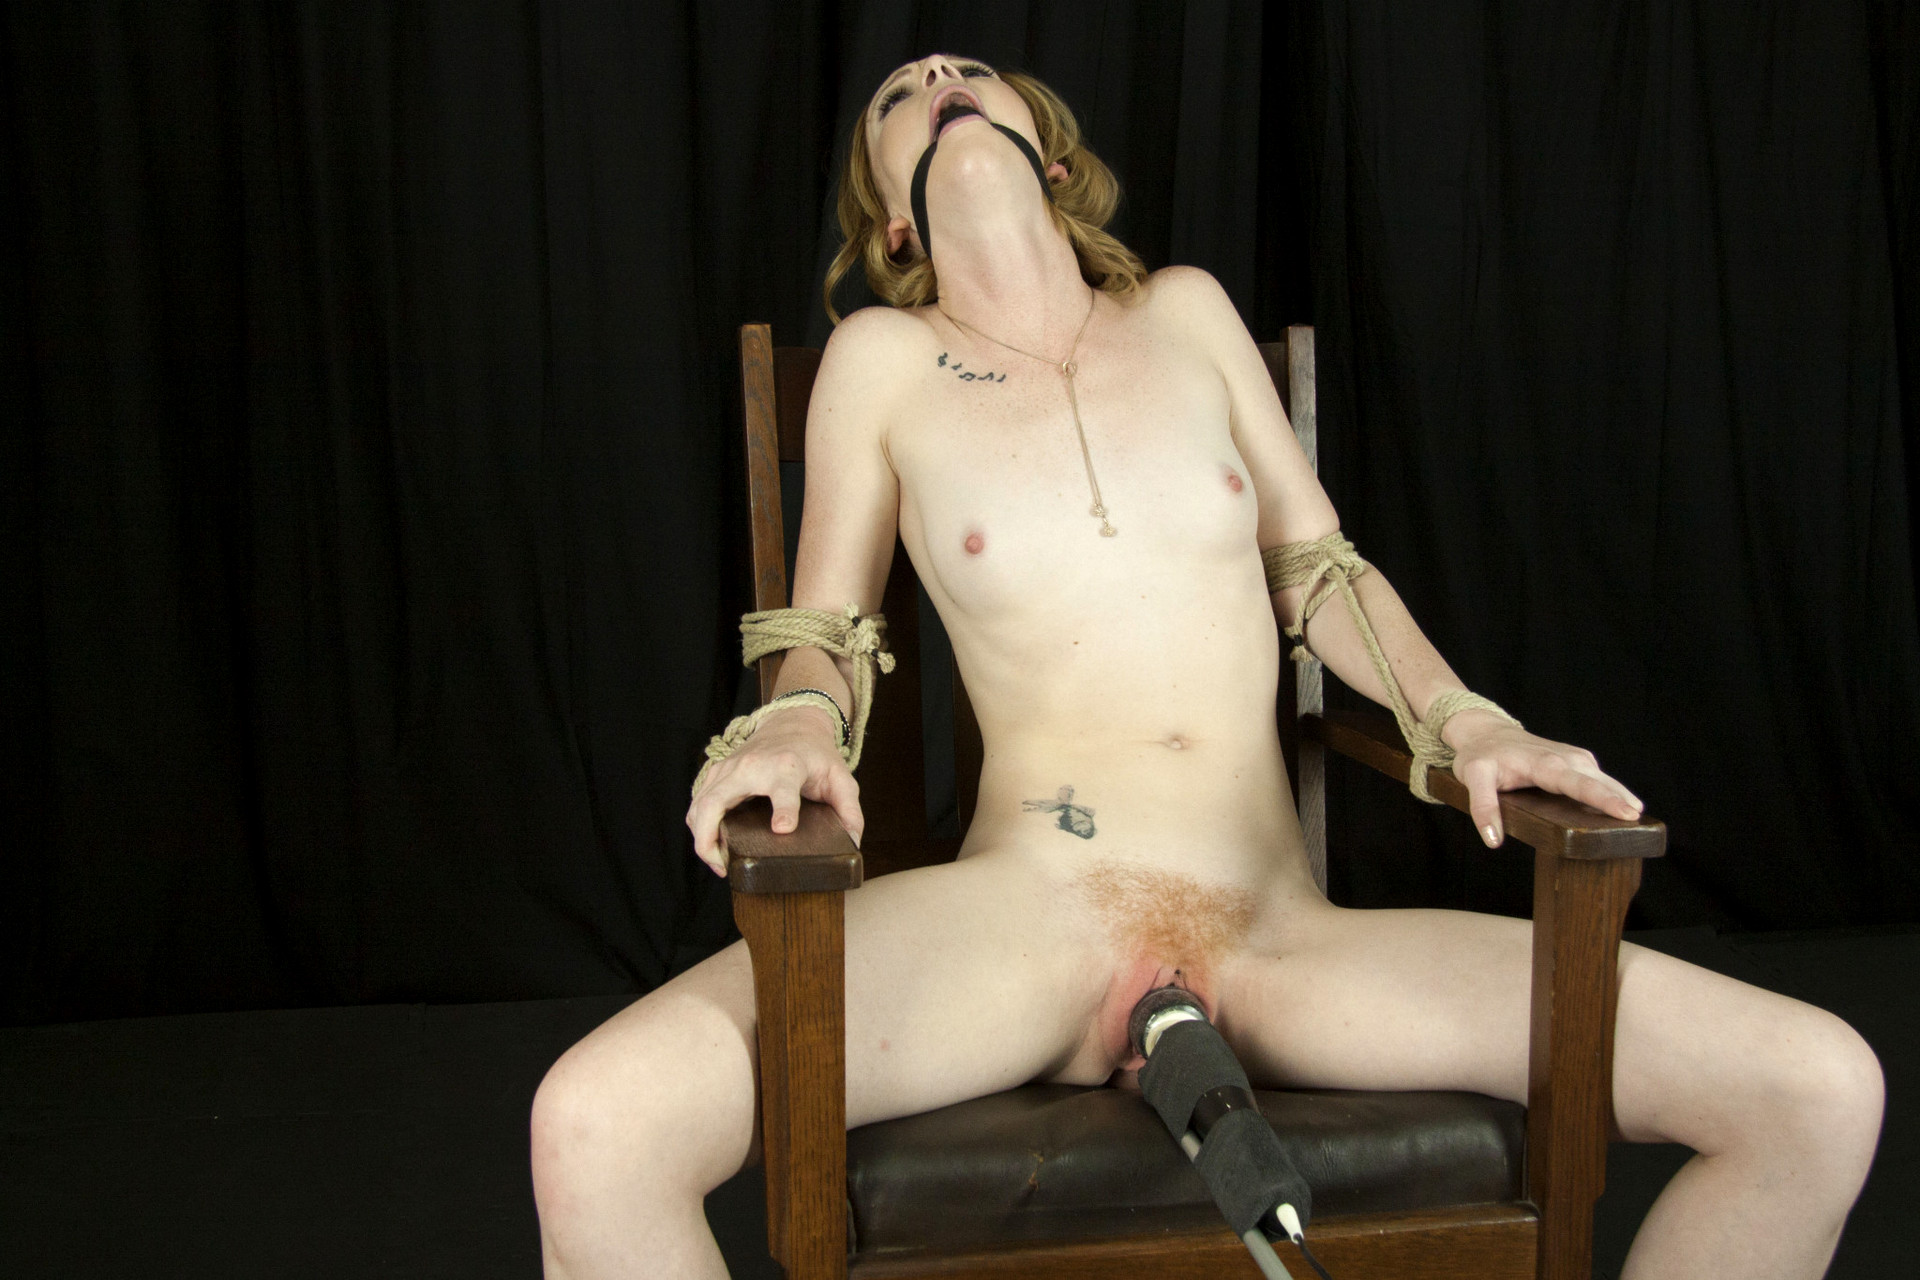 Tightly bound and forced orgasm